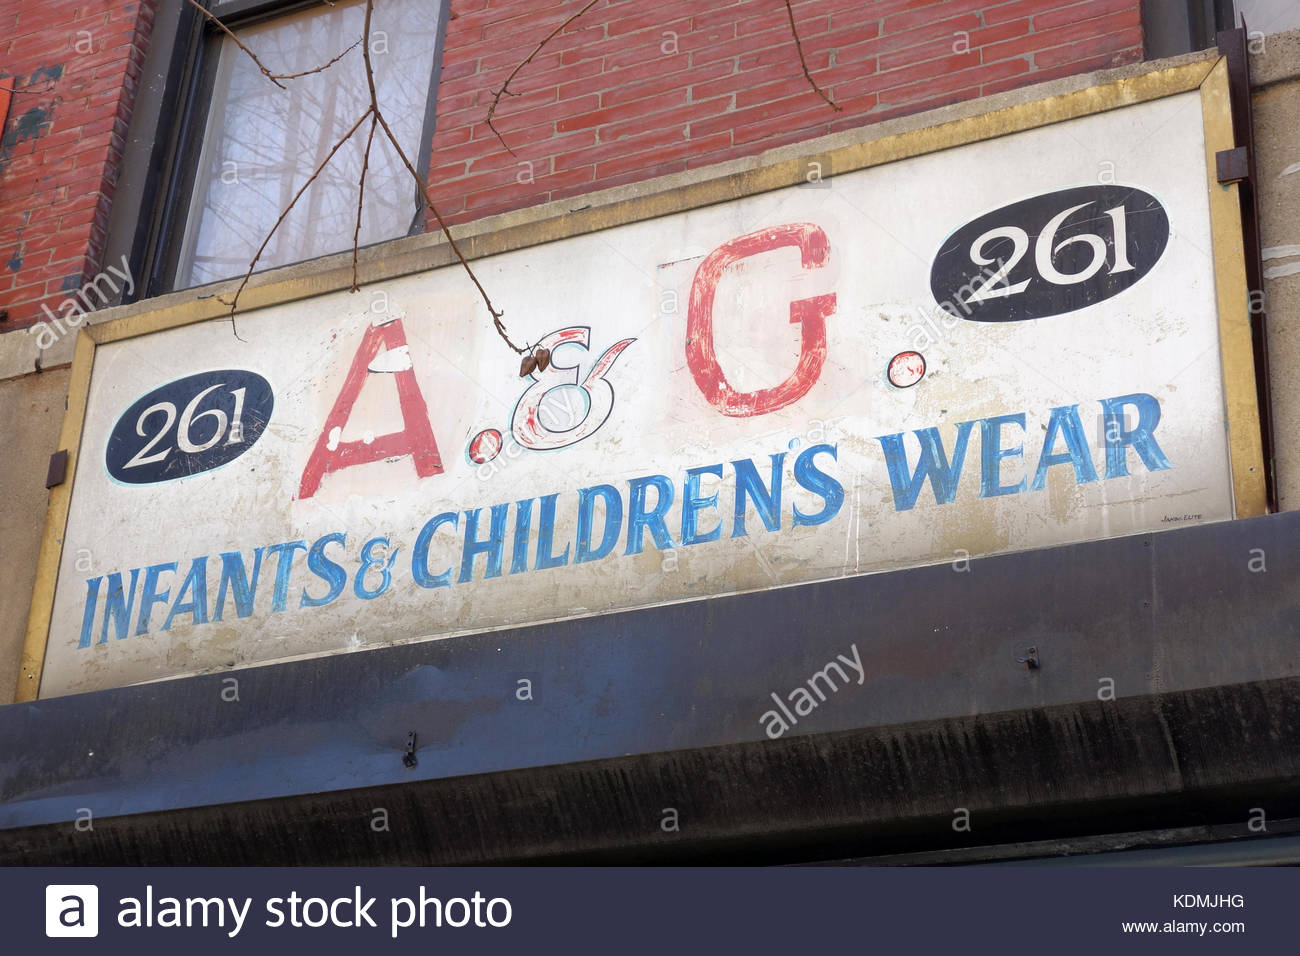 A & G Infants & Children's Wear Ghost Sign - Stock Image